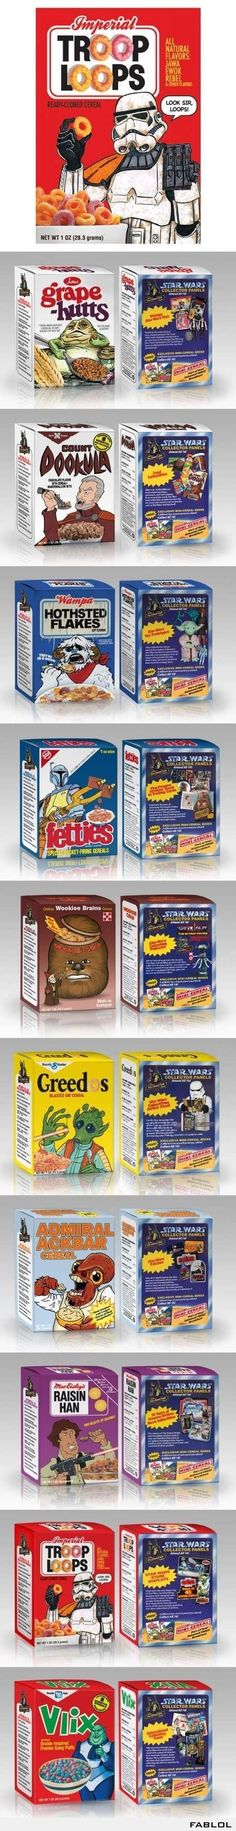 Star Wars Cereals - #starwars #geek